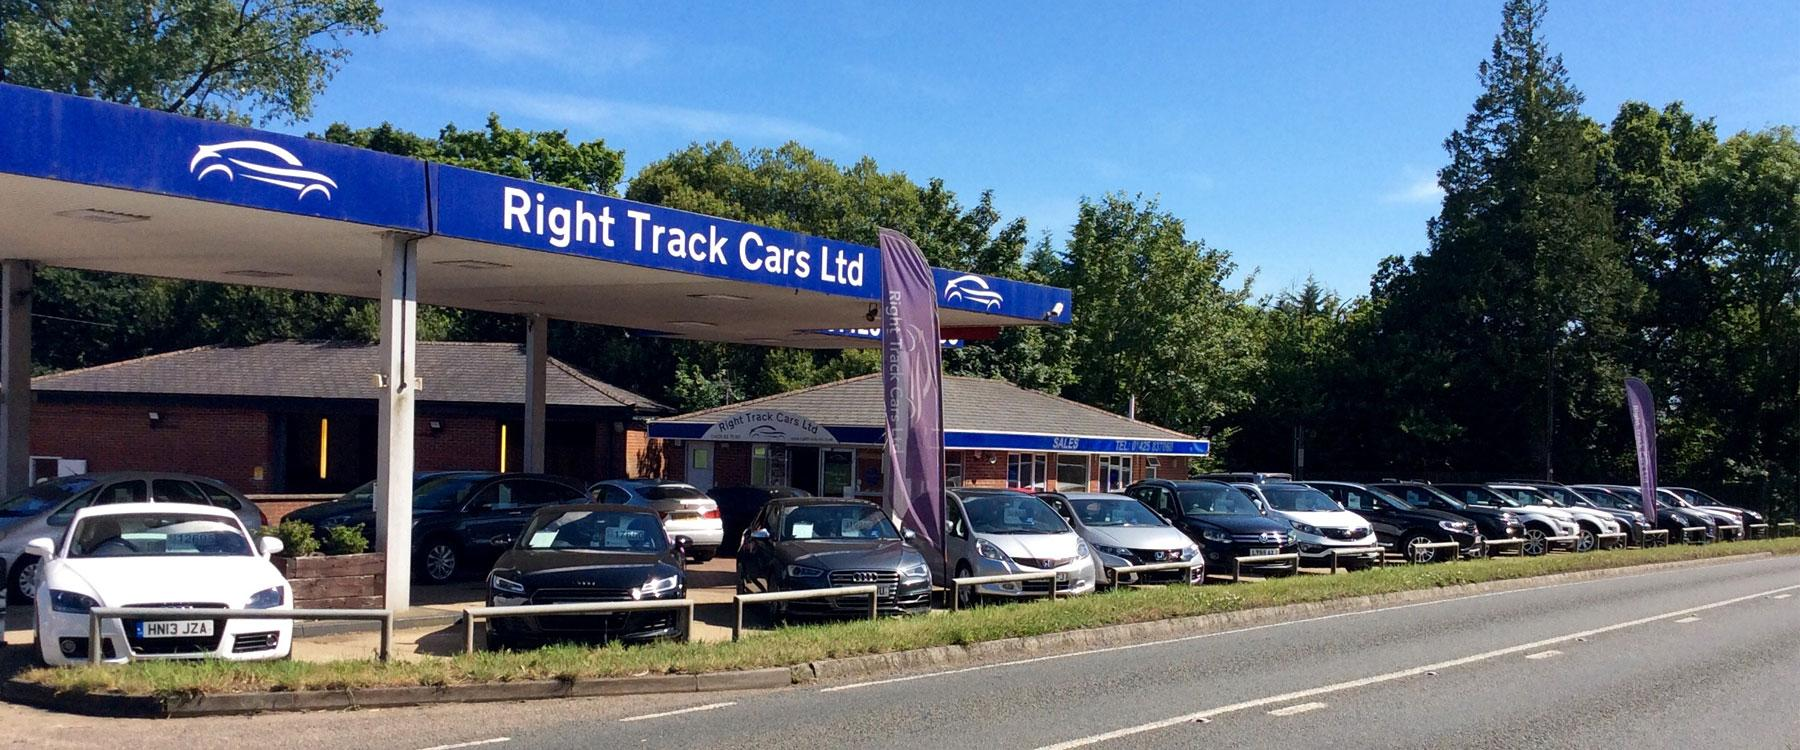 Used Cars Bournemouth, Dorset | Right Track Cars